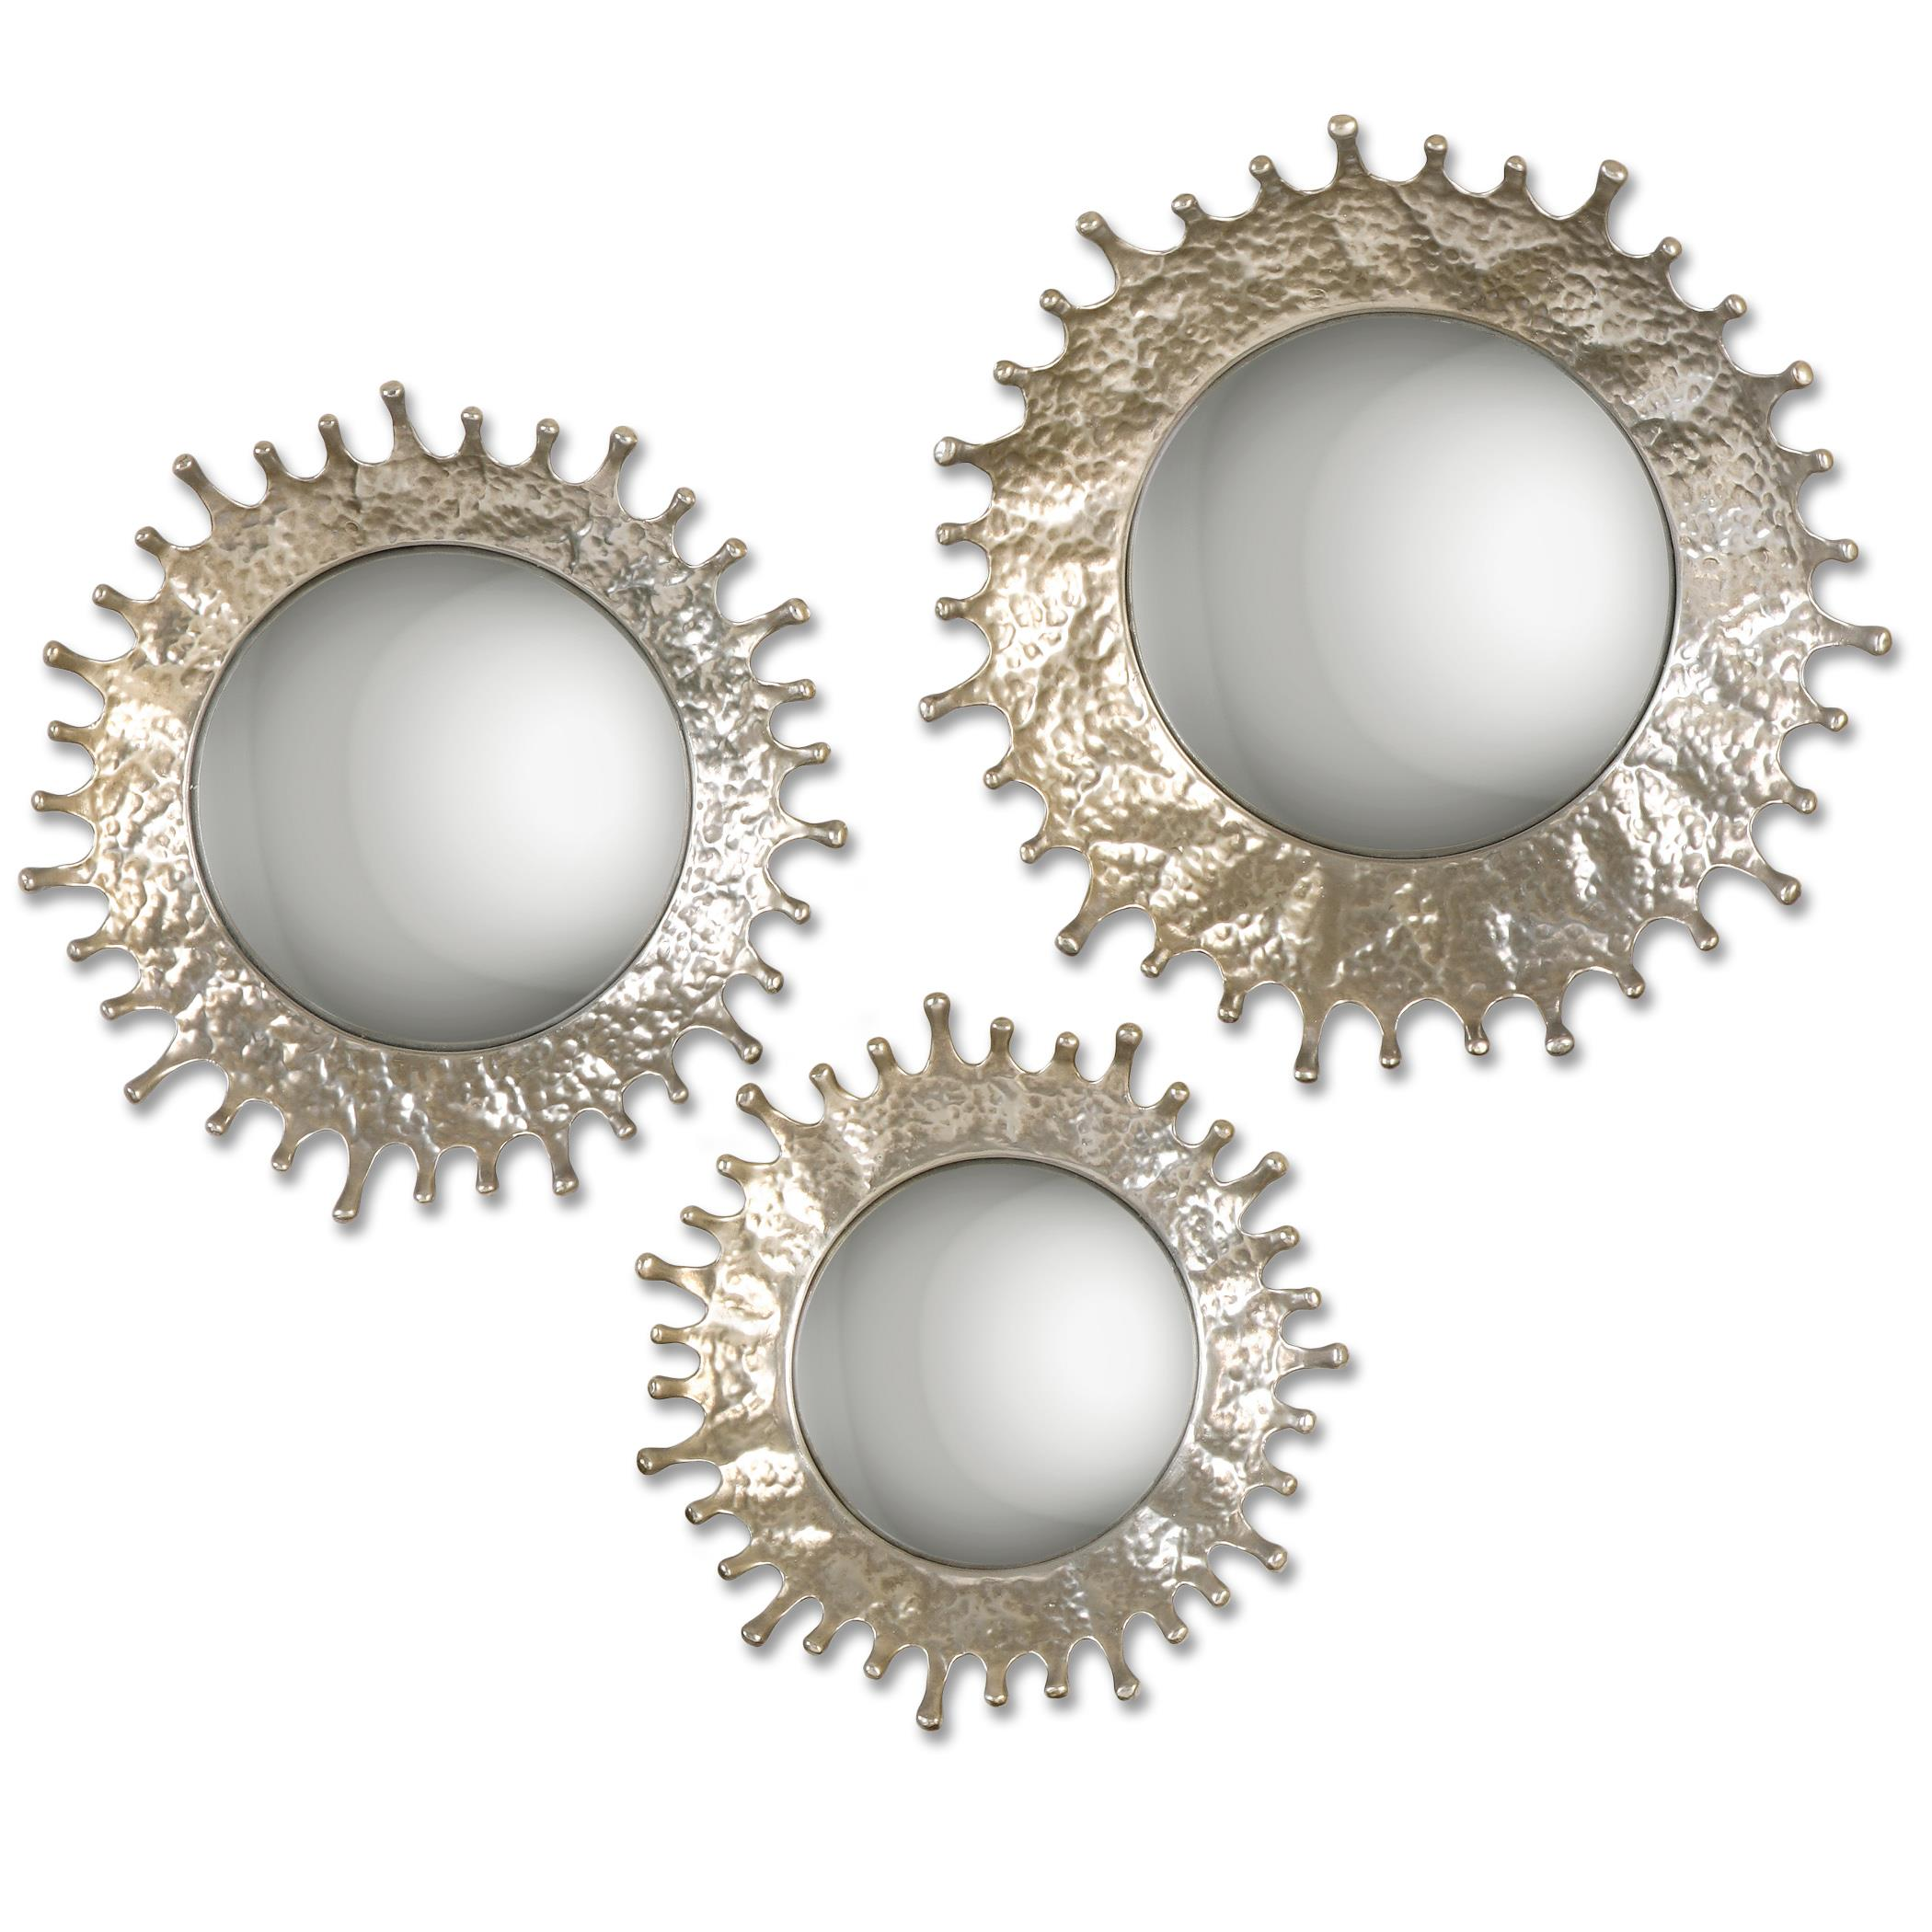 Uttermost Mirrors Rain Splash Round Mirrors, S/3 - Item Number: 12903